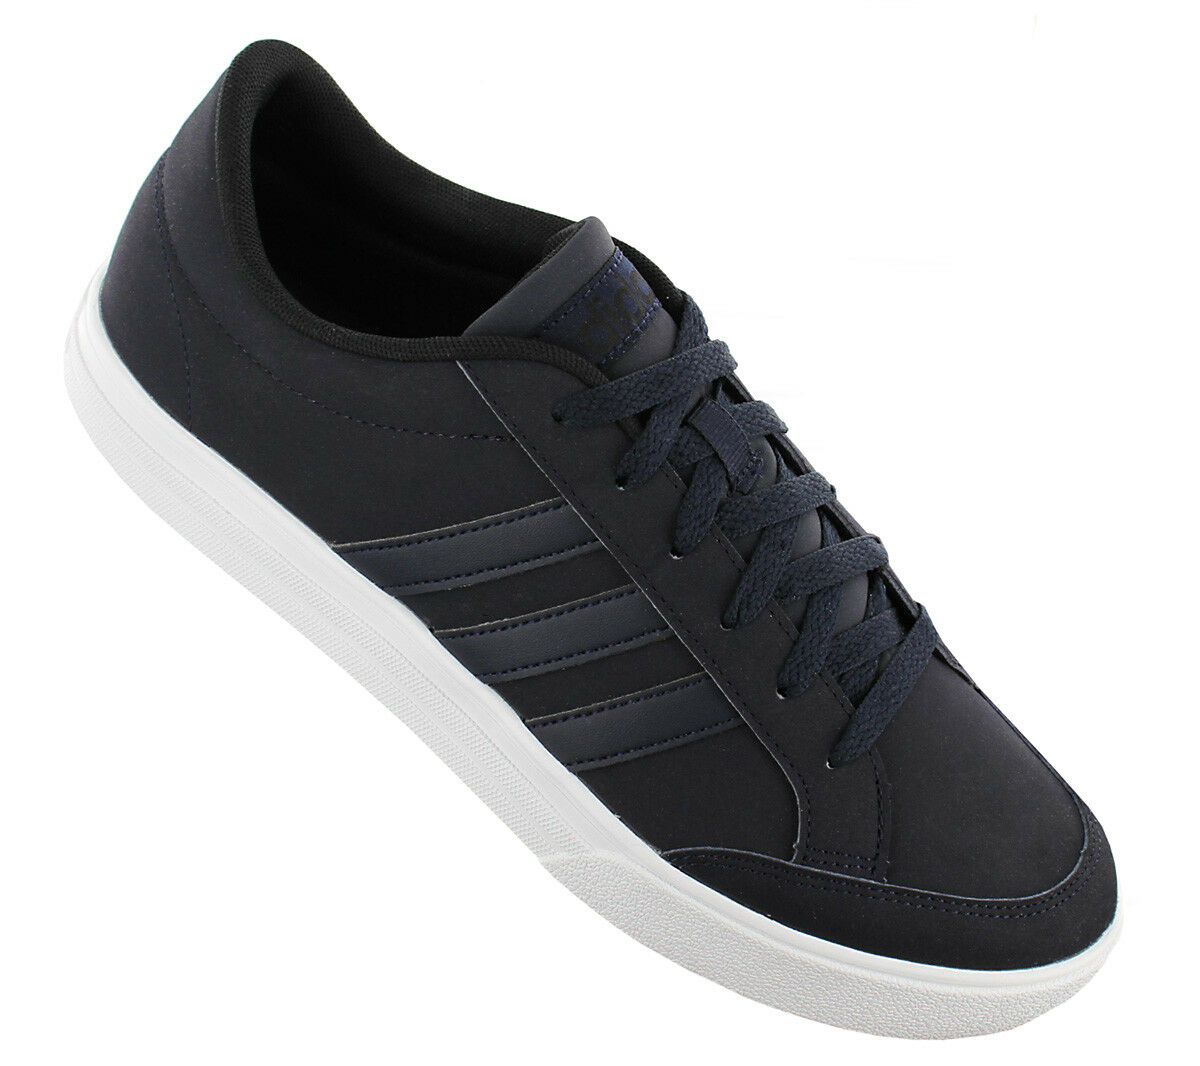 NEW adidas VS Set Low B43891 Men´s shoes Trainers Sneakers SALE